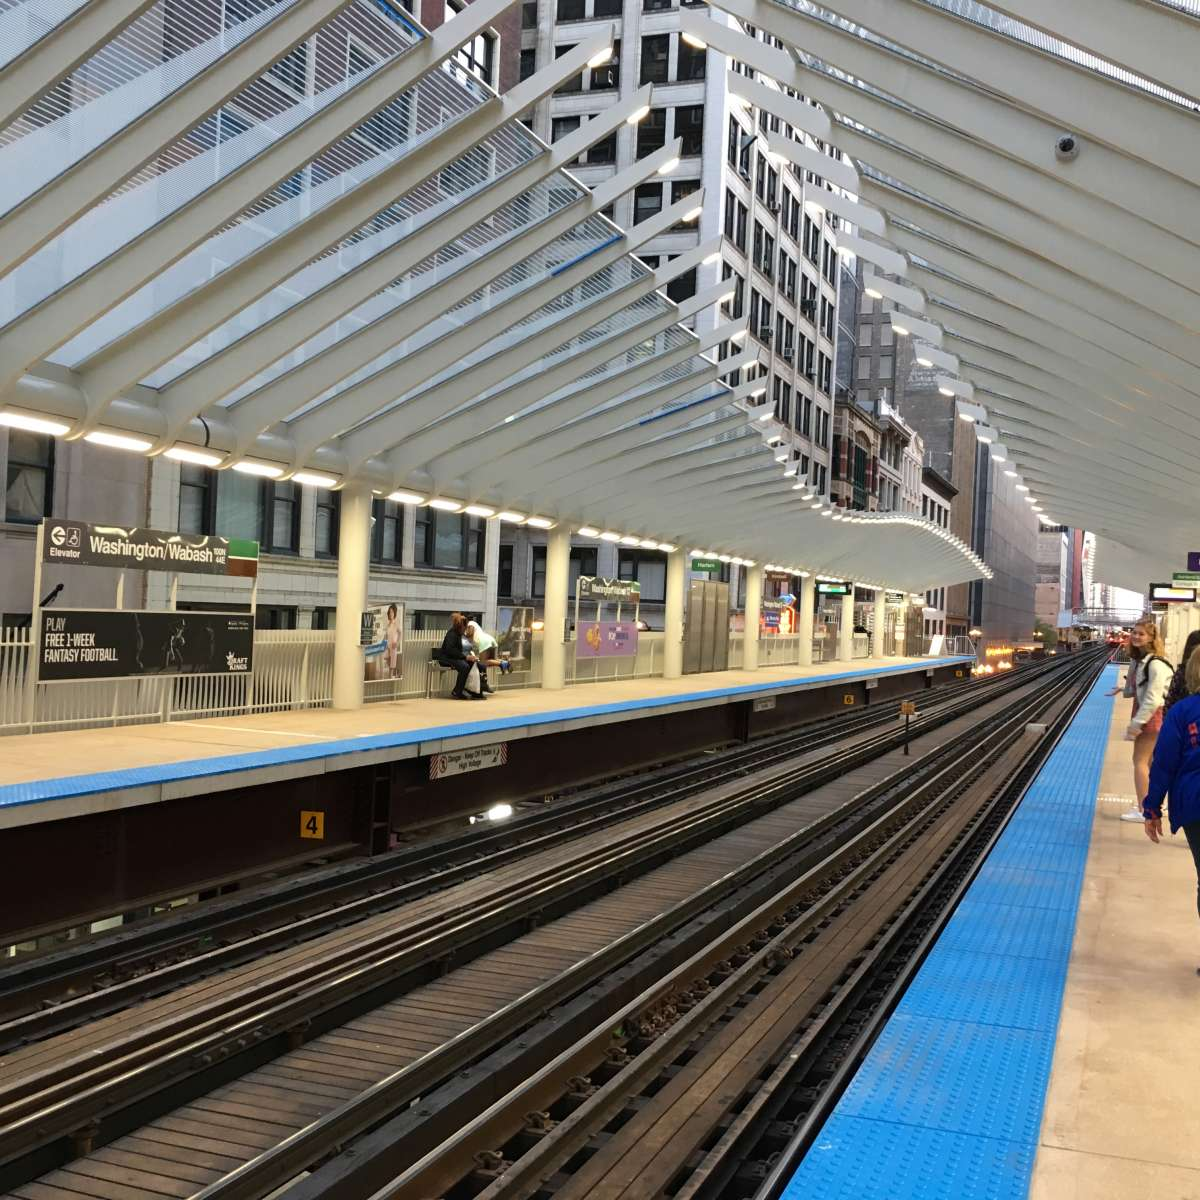 Washington and Wabash Station Turns 1: How the Street is Transforming